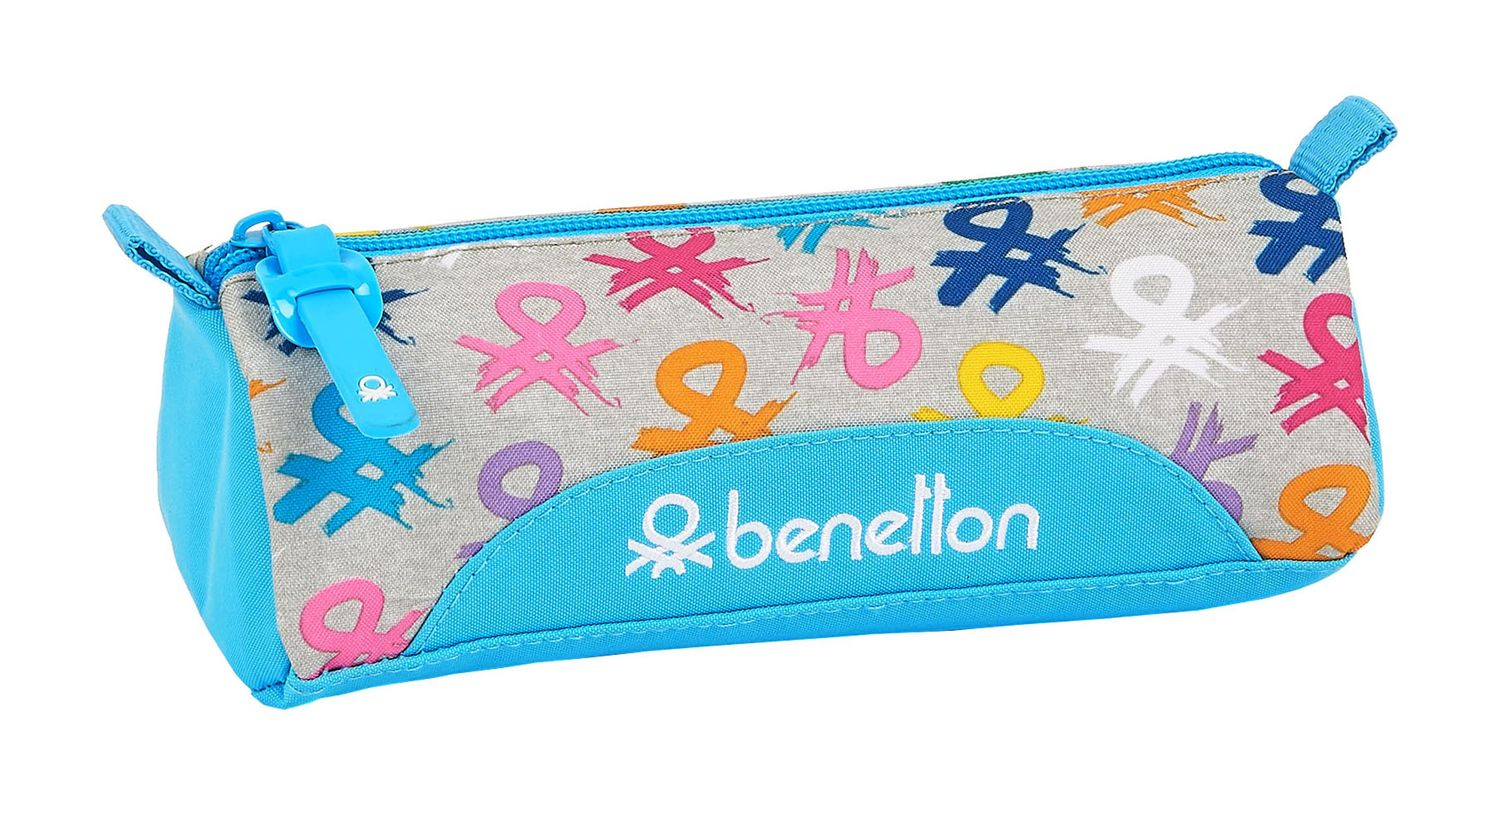 BENETTON LOGO Square Pencil Case – image 1